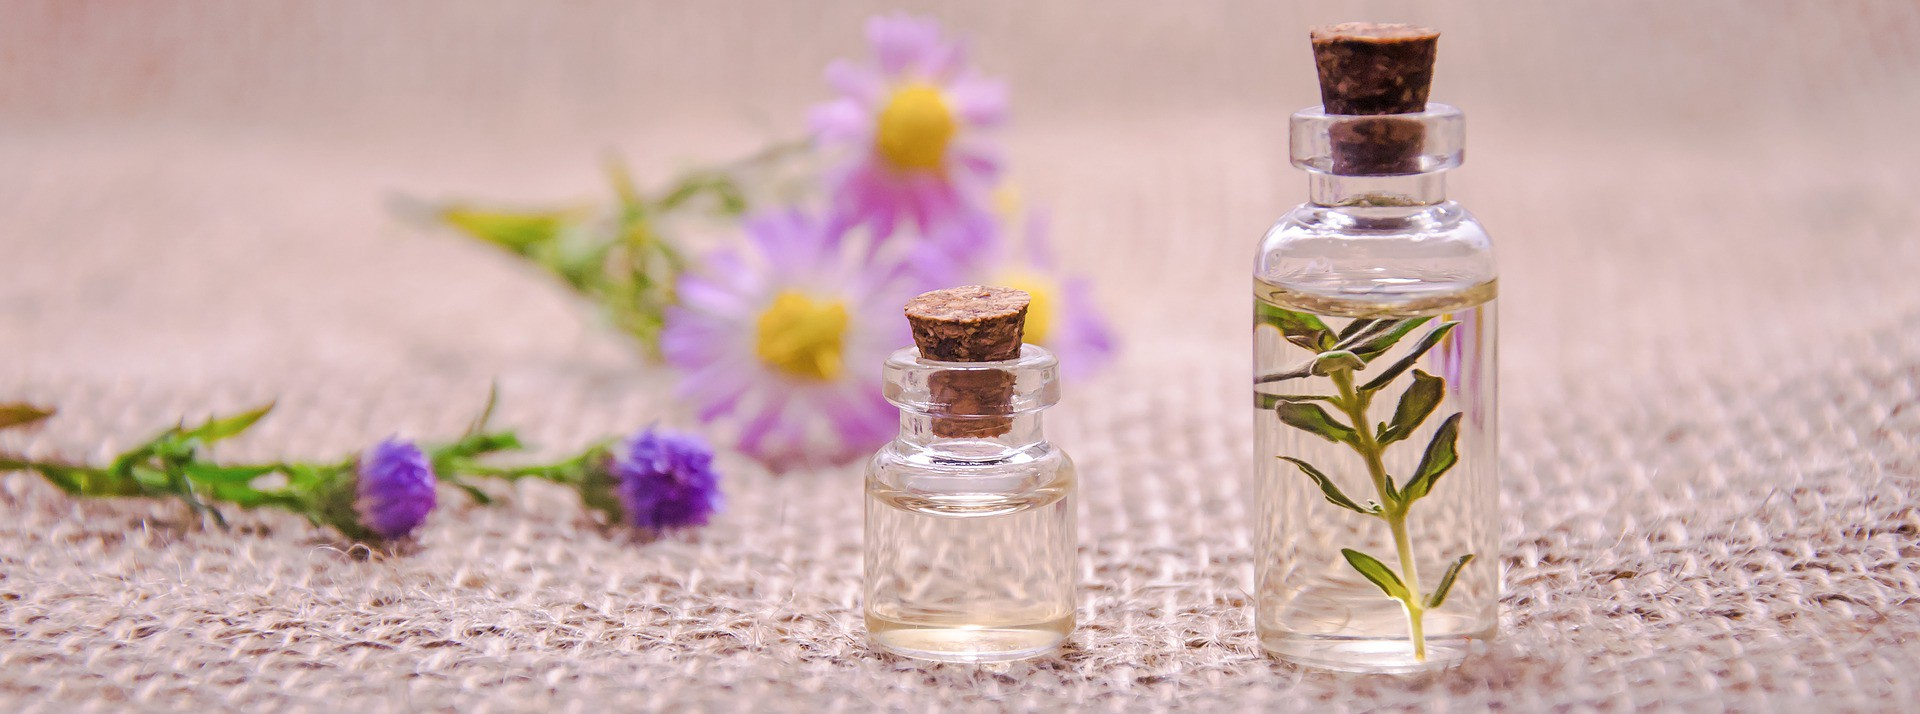 essential oils and violet flowers